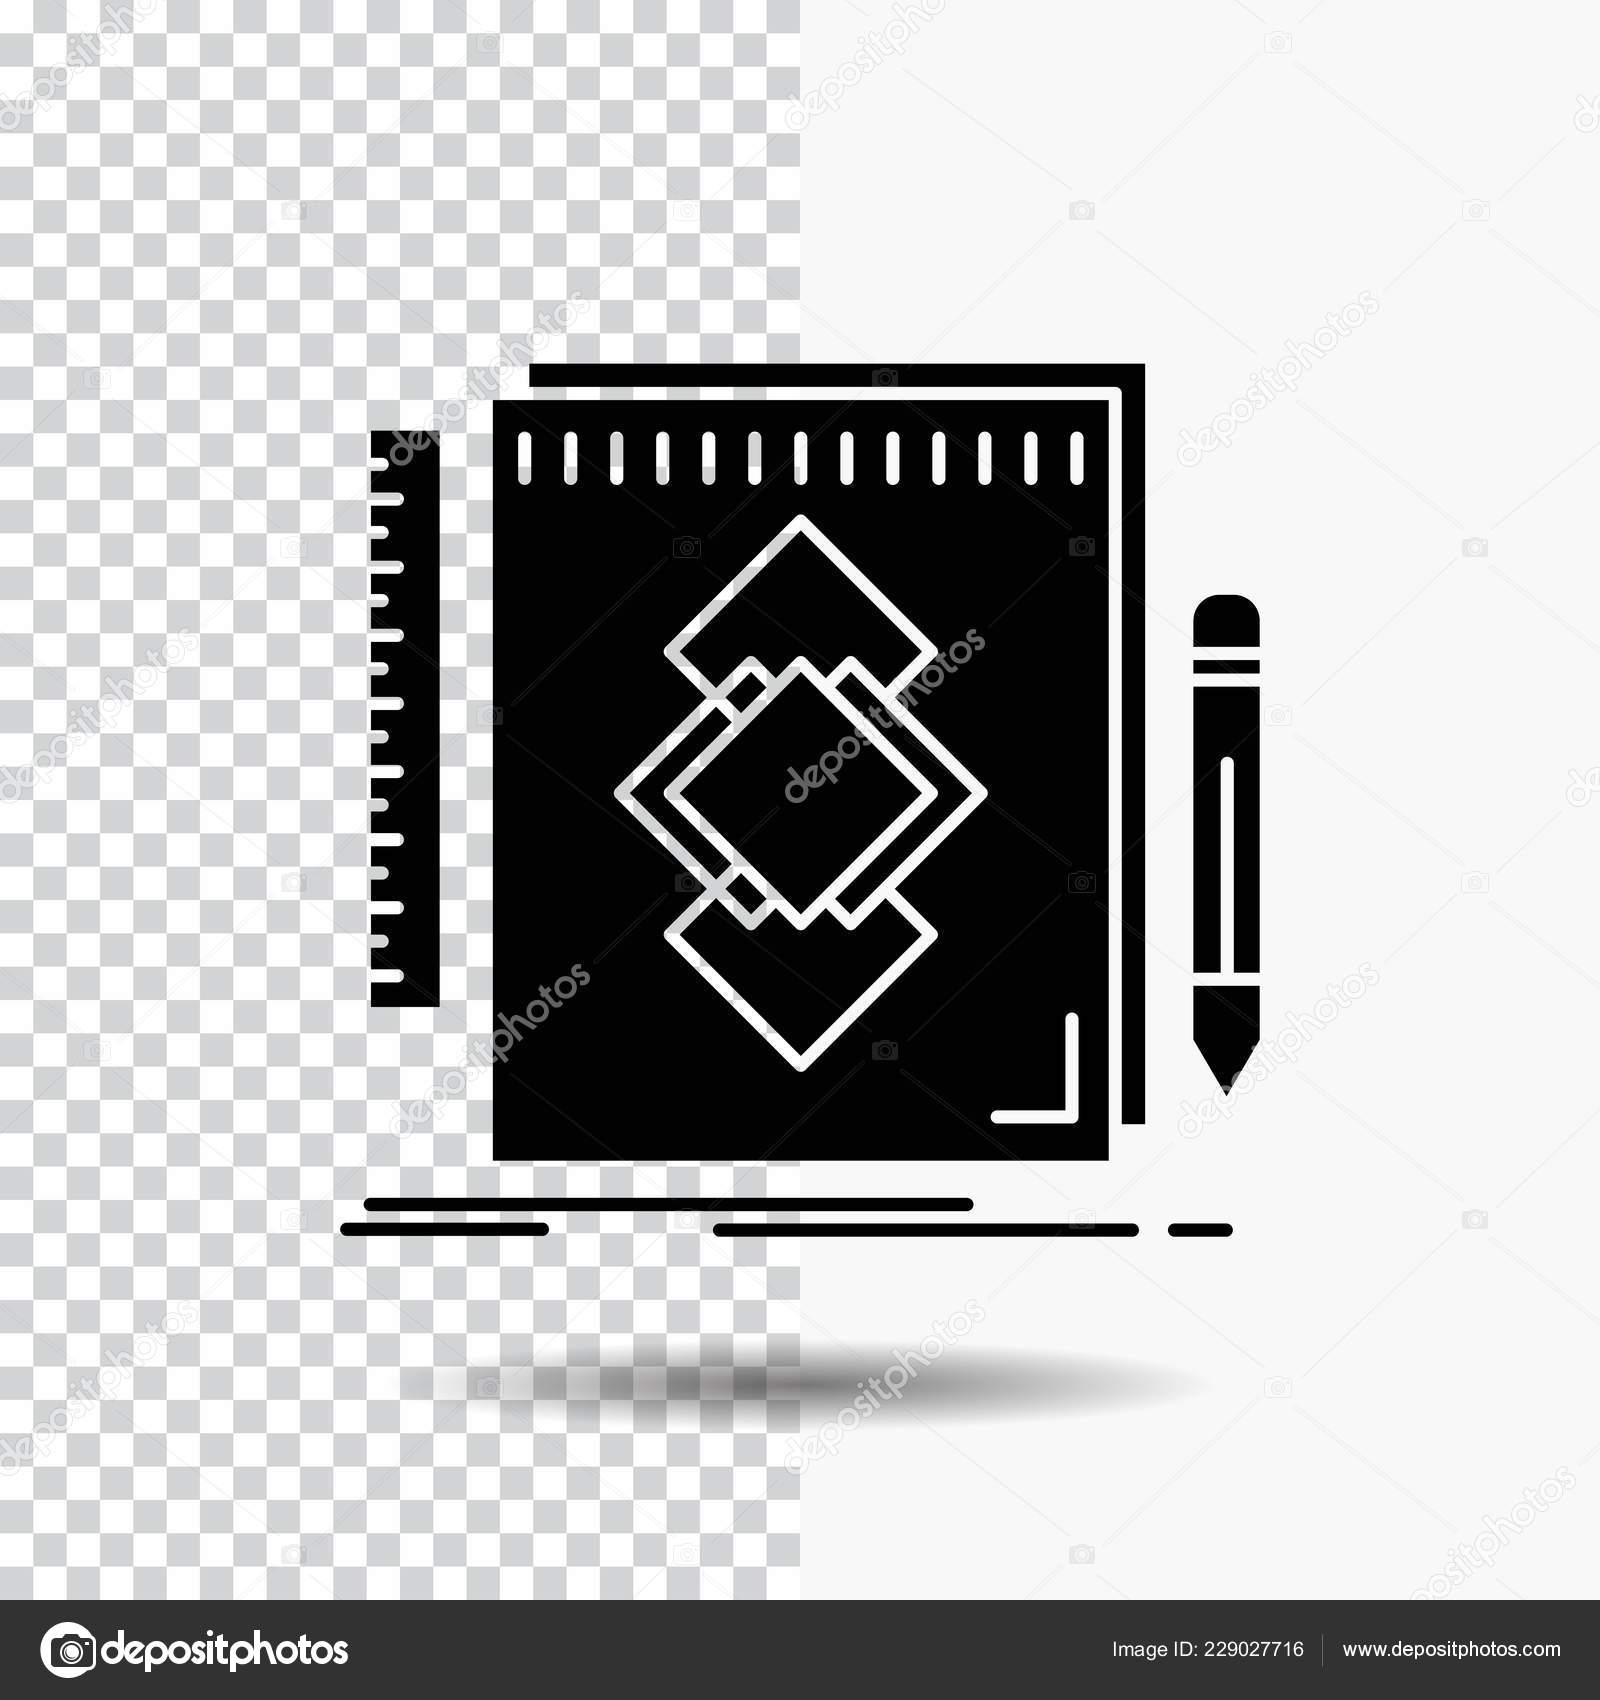 design tool identity draw development glyph icon transparent background black stock vector c flatart 229027716 depositphotos